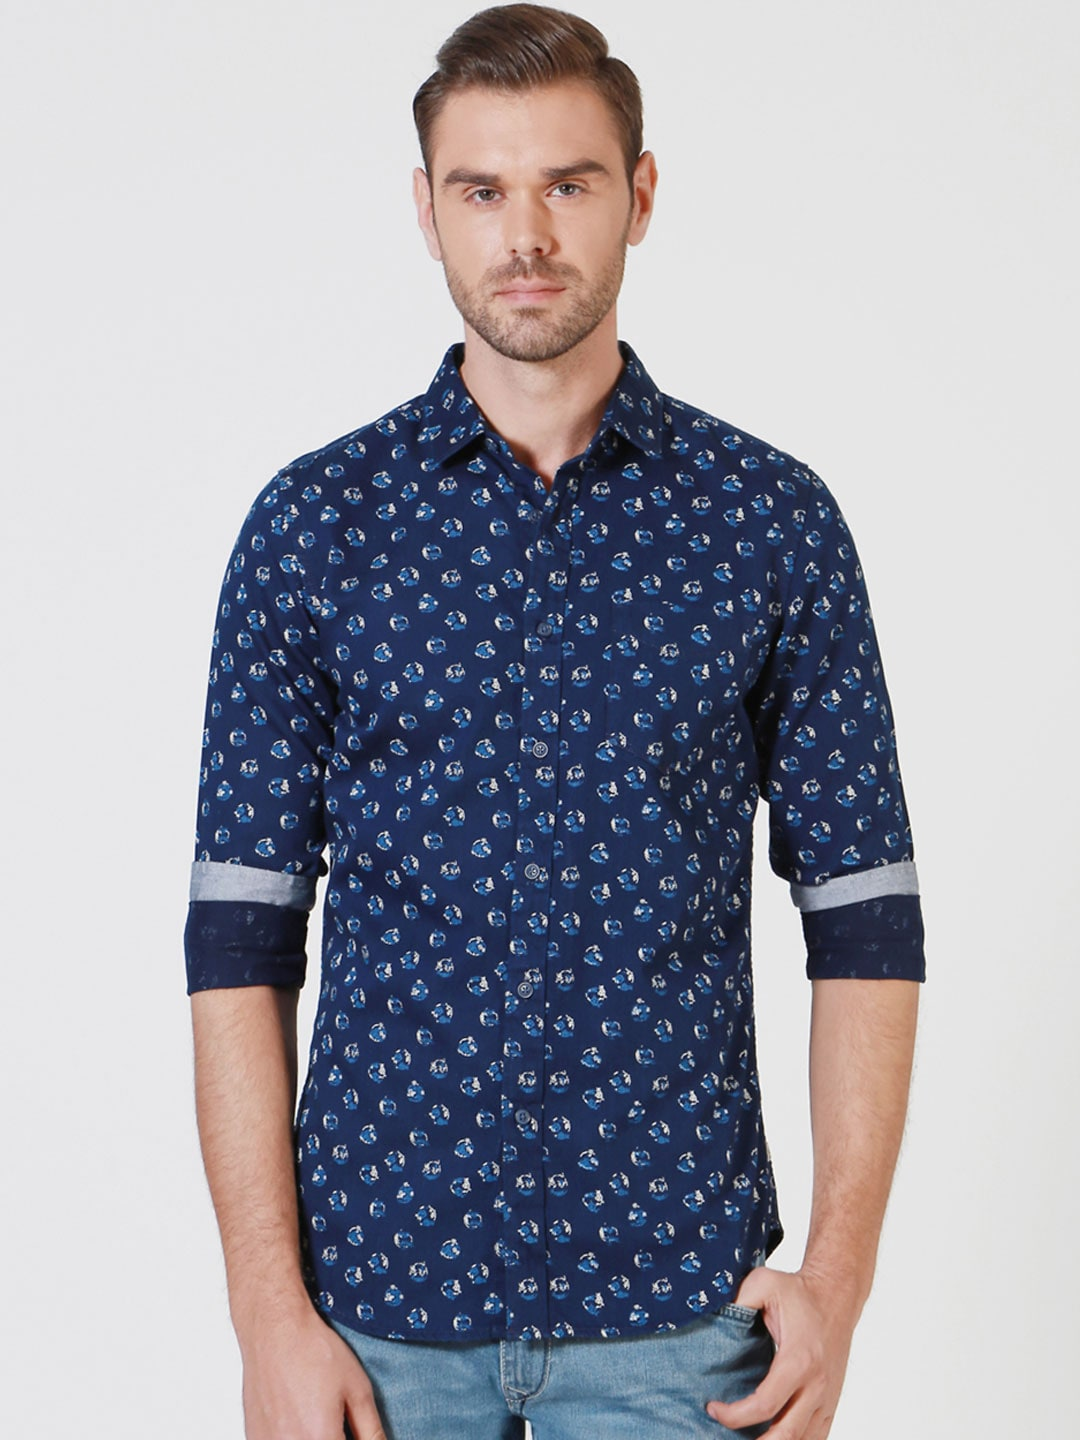 Solly Jeans Co. by Allen Solly Men Blue Regular Fit Printed Casual Shirt image